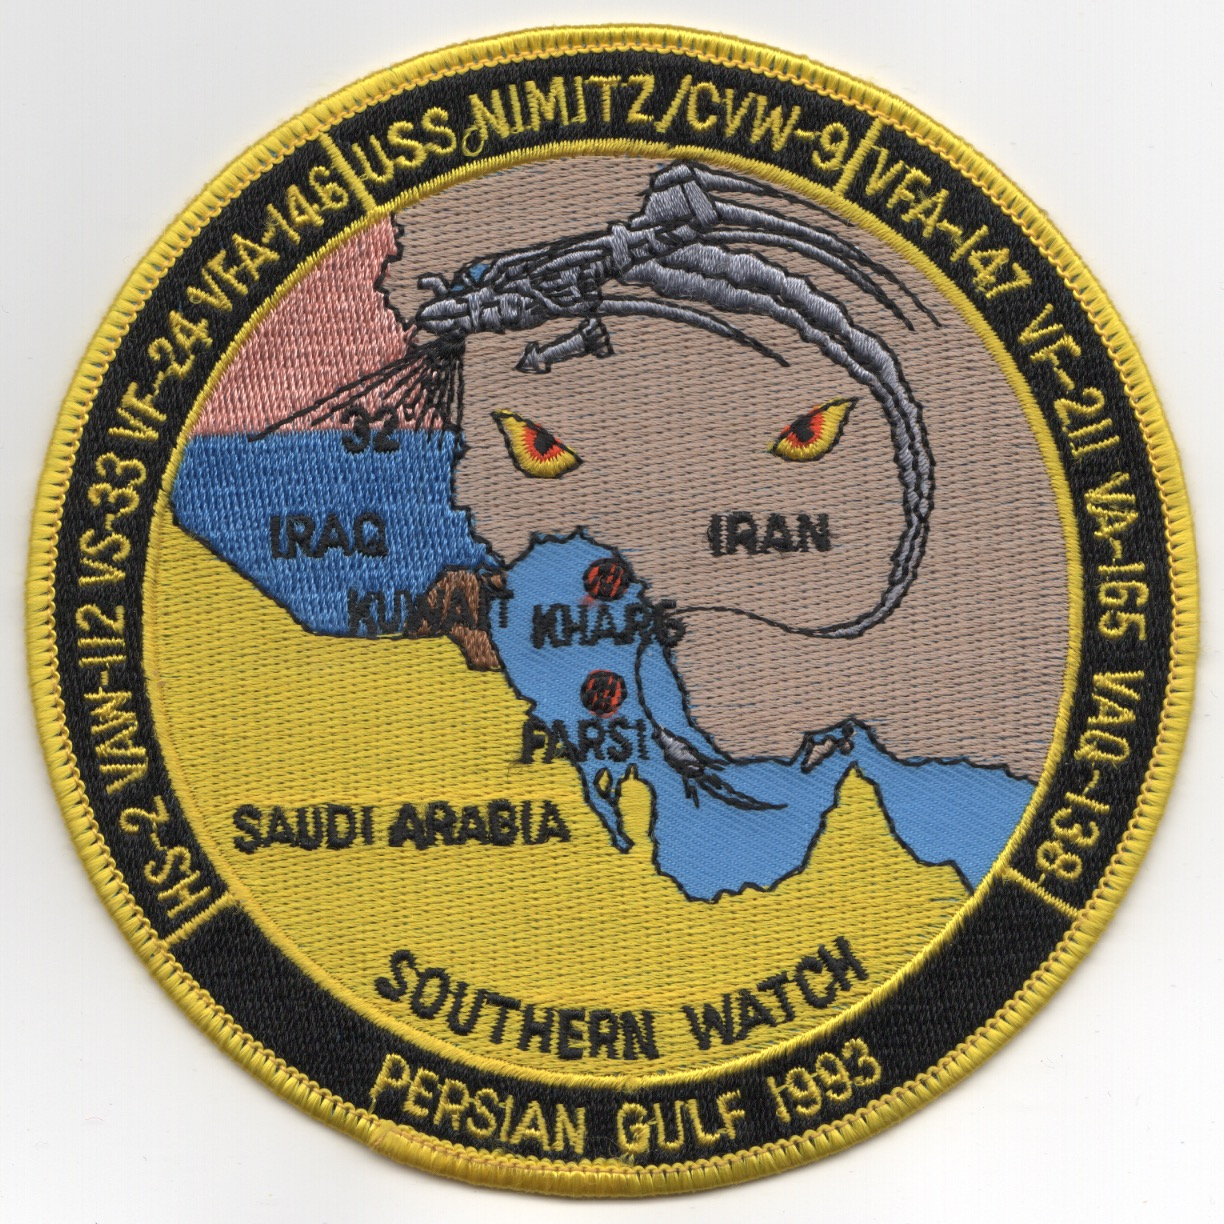 VAQ-138 1993 'OSW' Cruise Patch